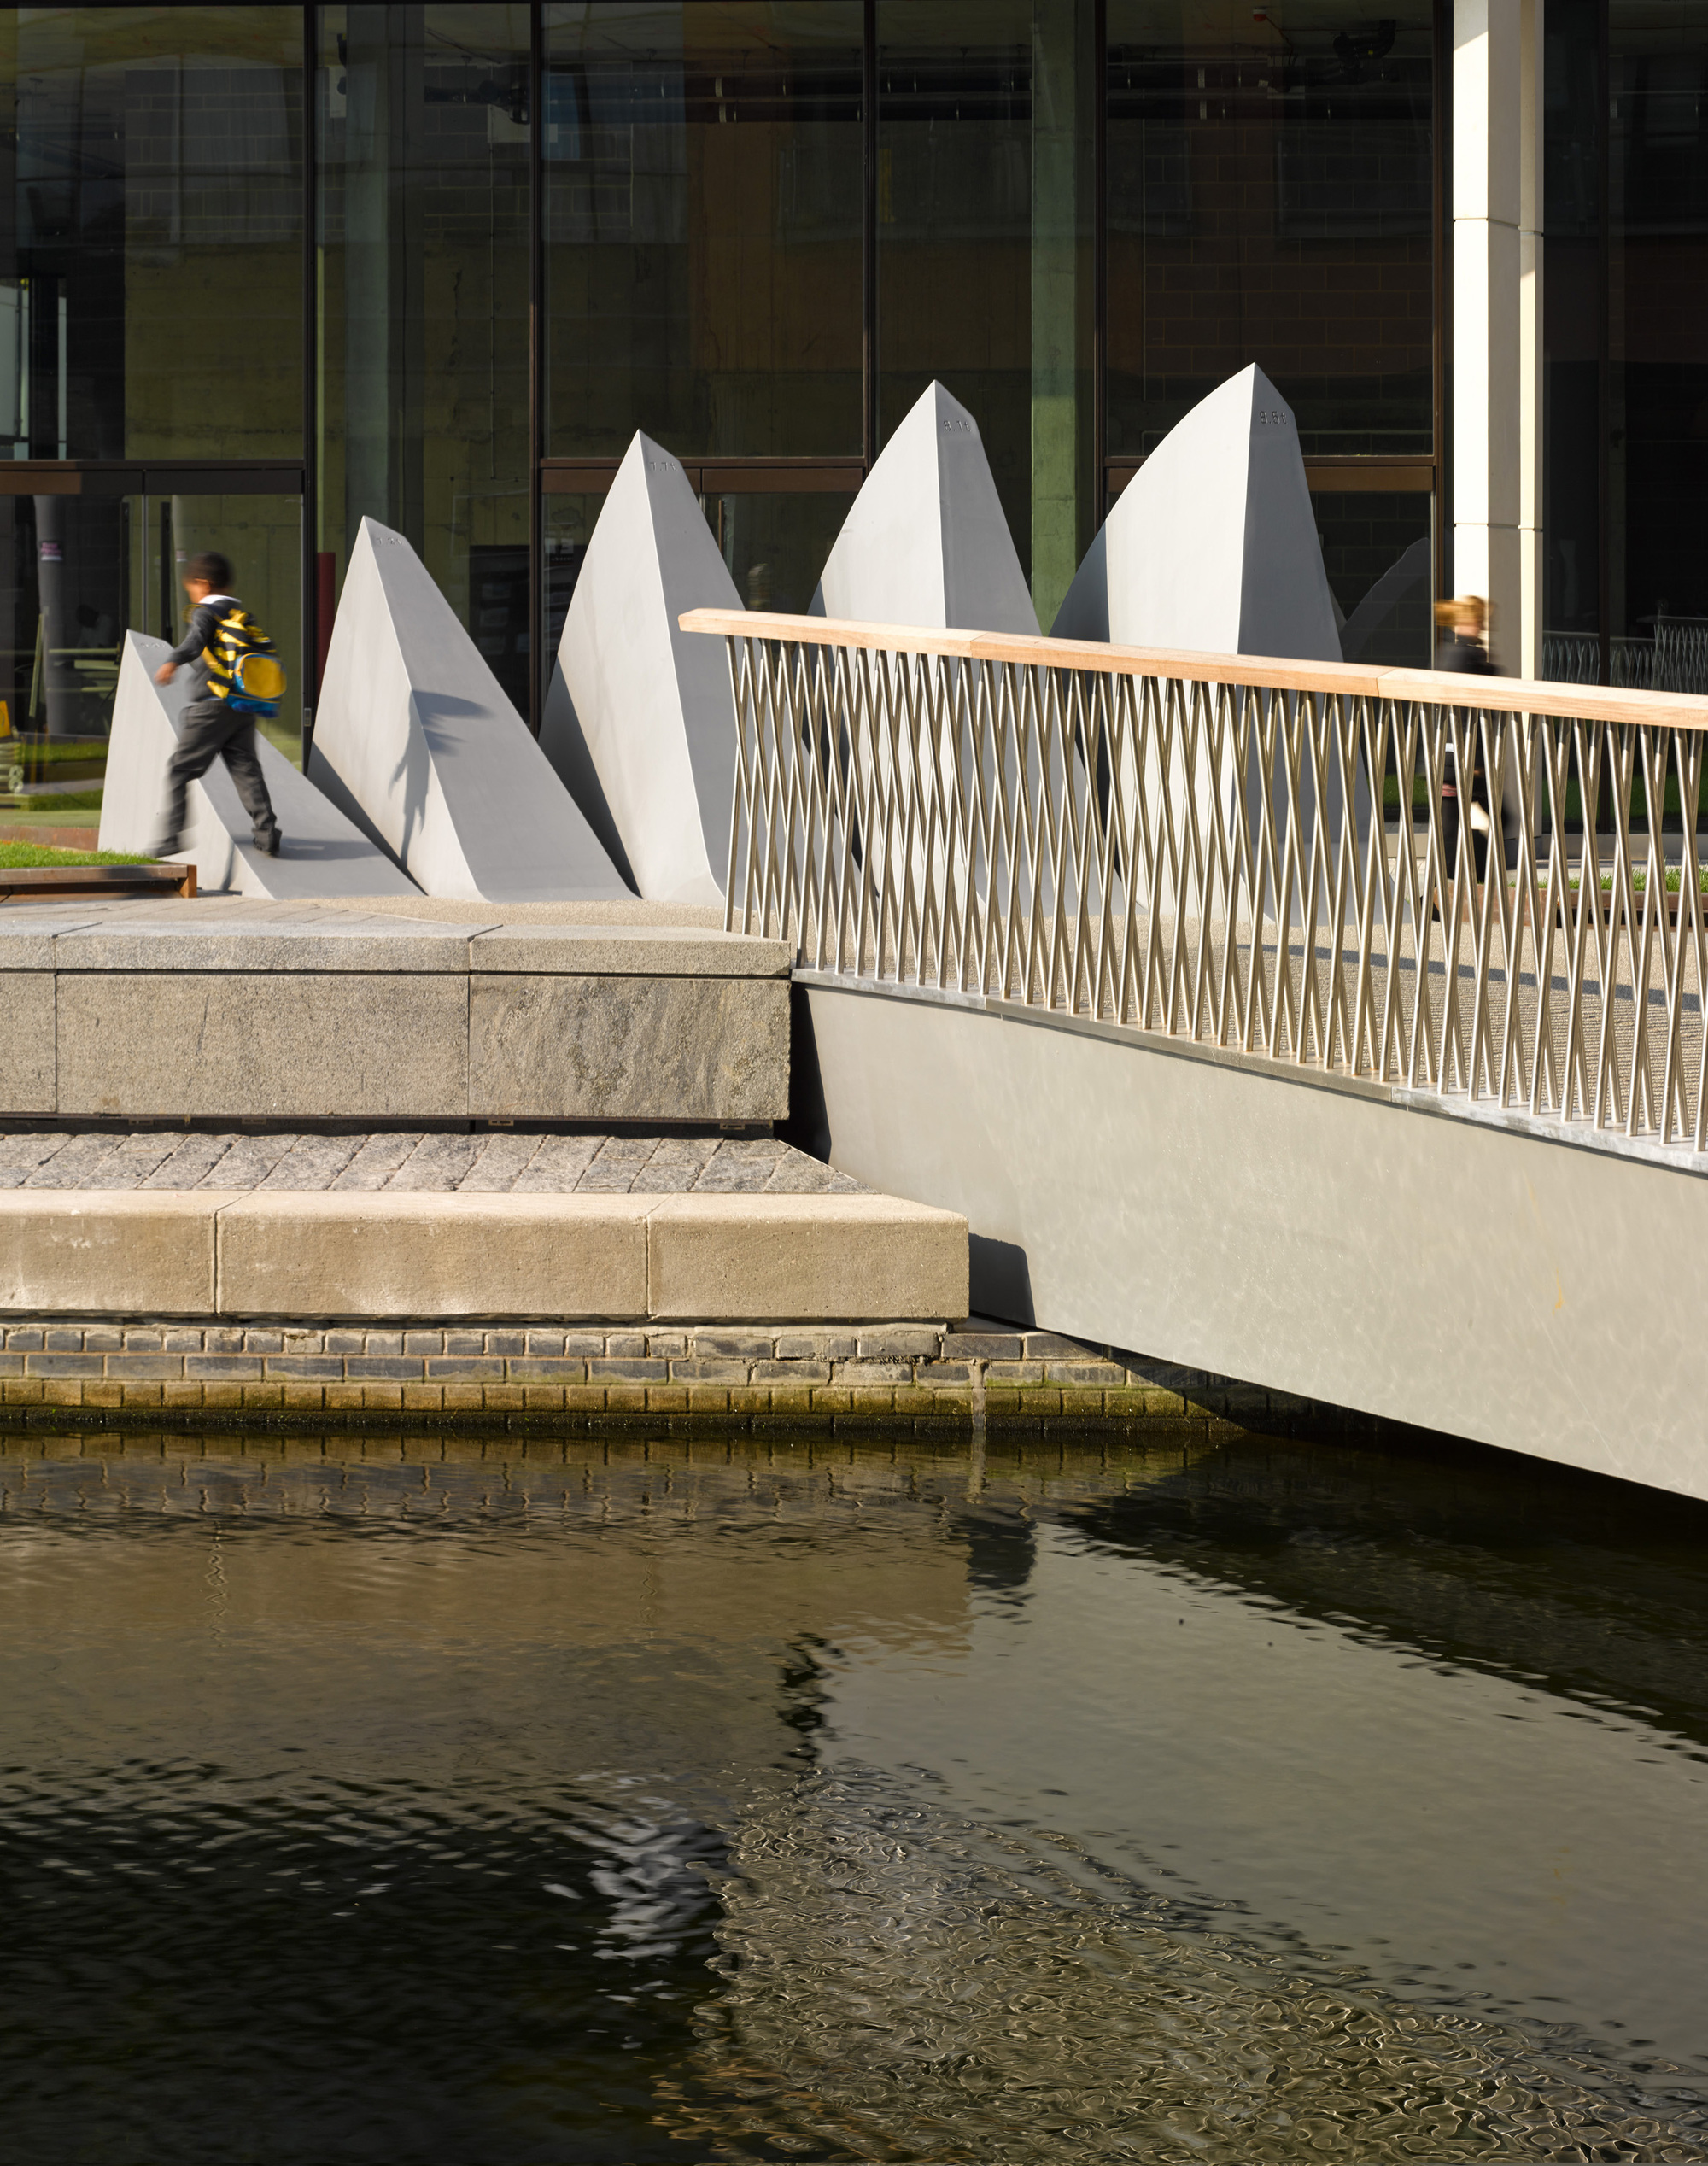 542de520c07a80548f0004bd_merchant-square-footbridge-knight-architects_merchant_square_bridge5_medium